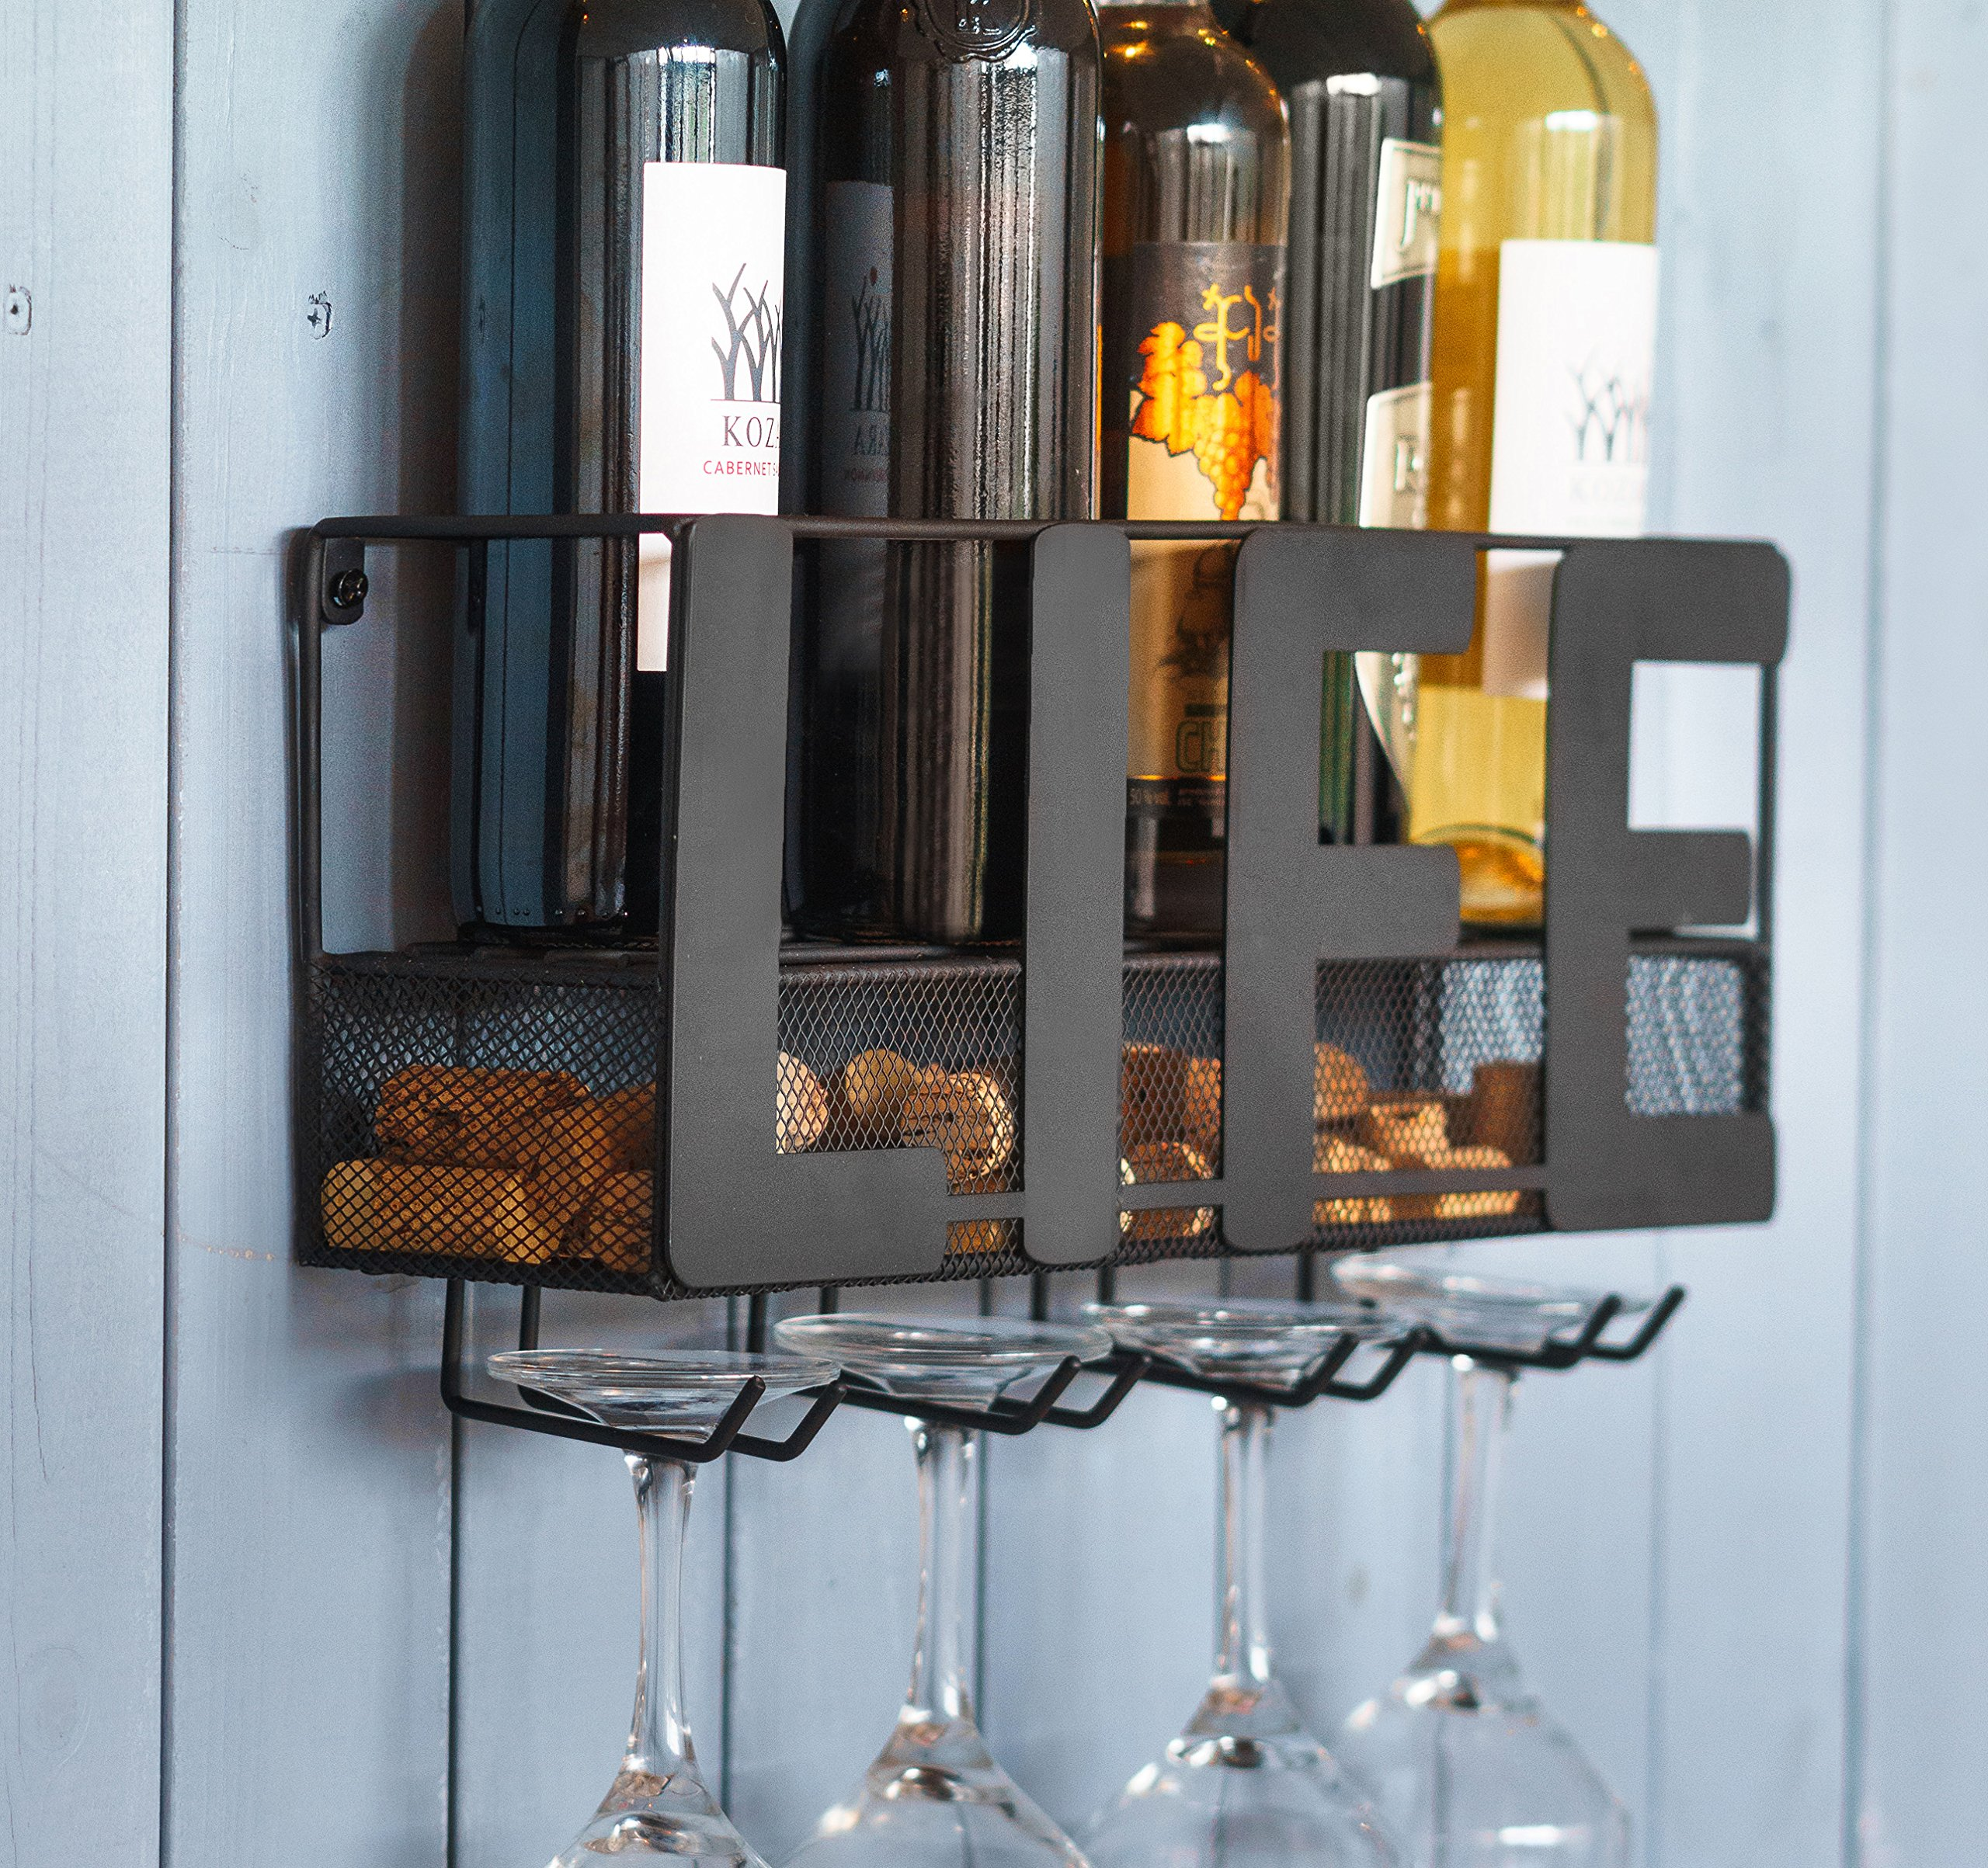 Kenley Wall Mounted Wine Rack - Rustic Metal Hanging Wine Bottle Shelf with Holder for 4 Glasses and Cork Storage - Home Bar & Kitchen Décor Accessories